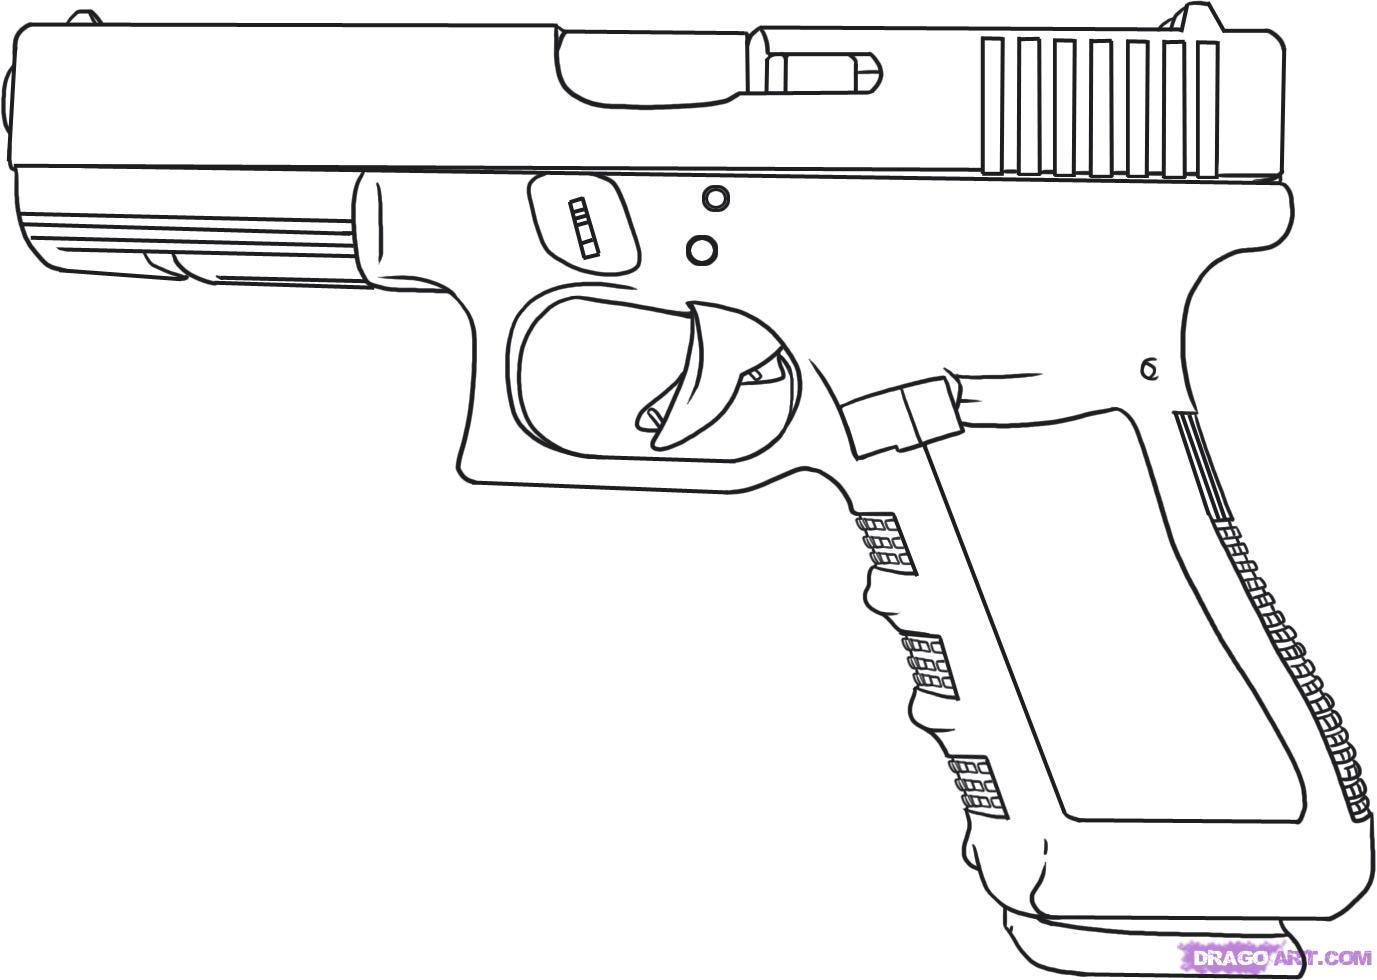 Drawn pistol old gun A glock How by to